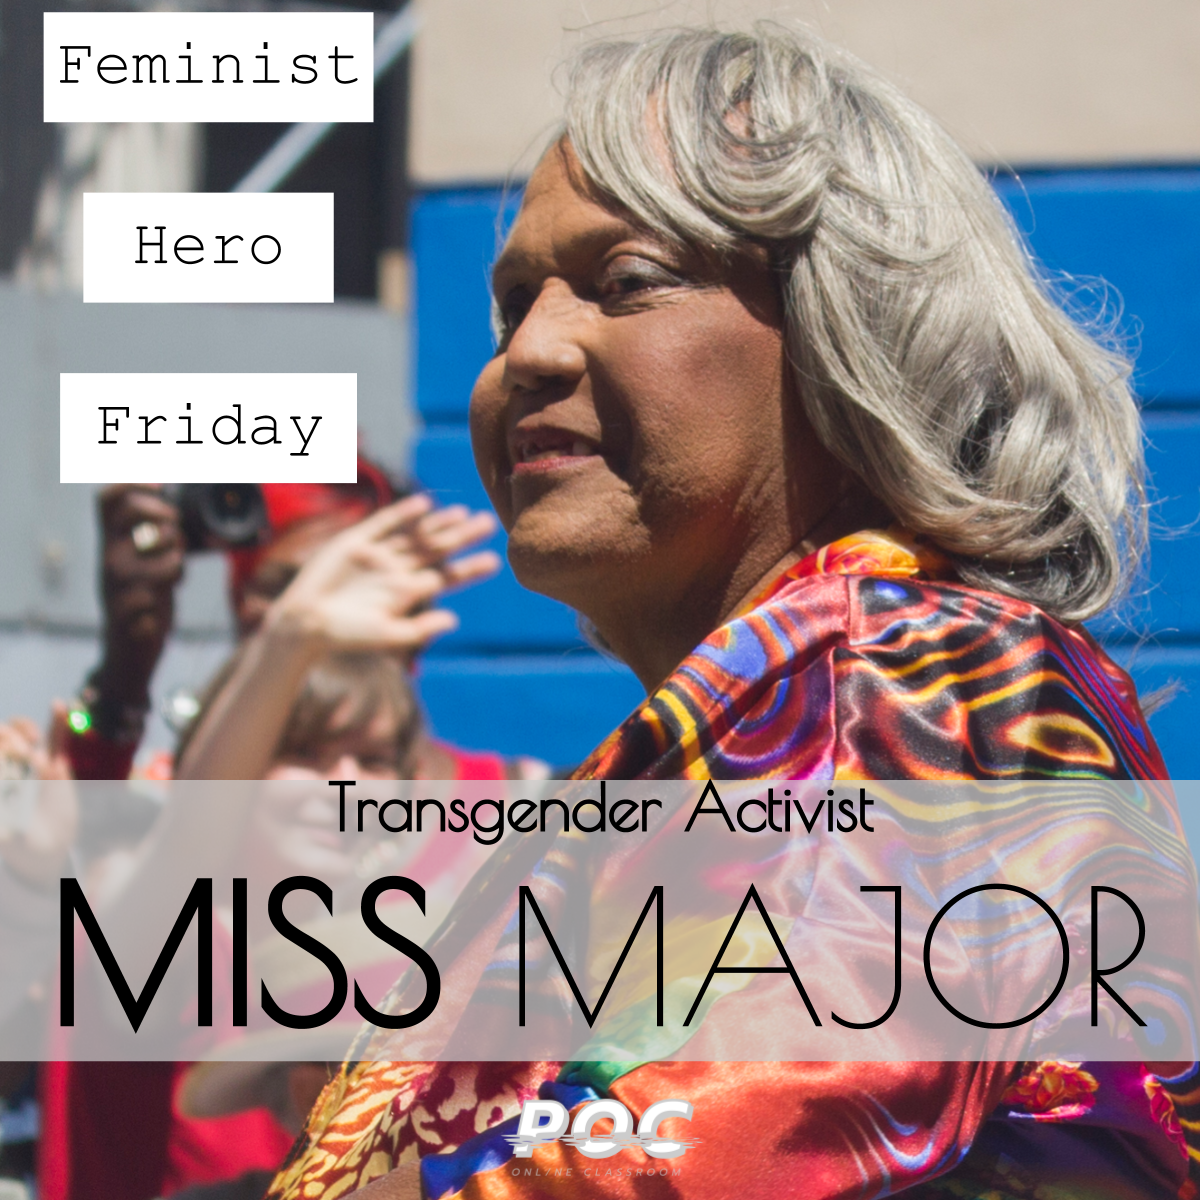 "Image is Miss Major looking to the left side of the frame, wearing a brightly colored jacket. To her left are three text boxes reading ""Feminist Hero Friday."" Underneath is a textbox reading ""Transgender Activist Miss Major."" A white POC logo is at the bottom. Original image via  Jawbreaker ."